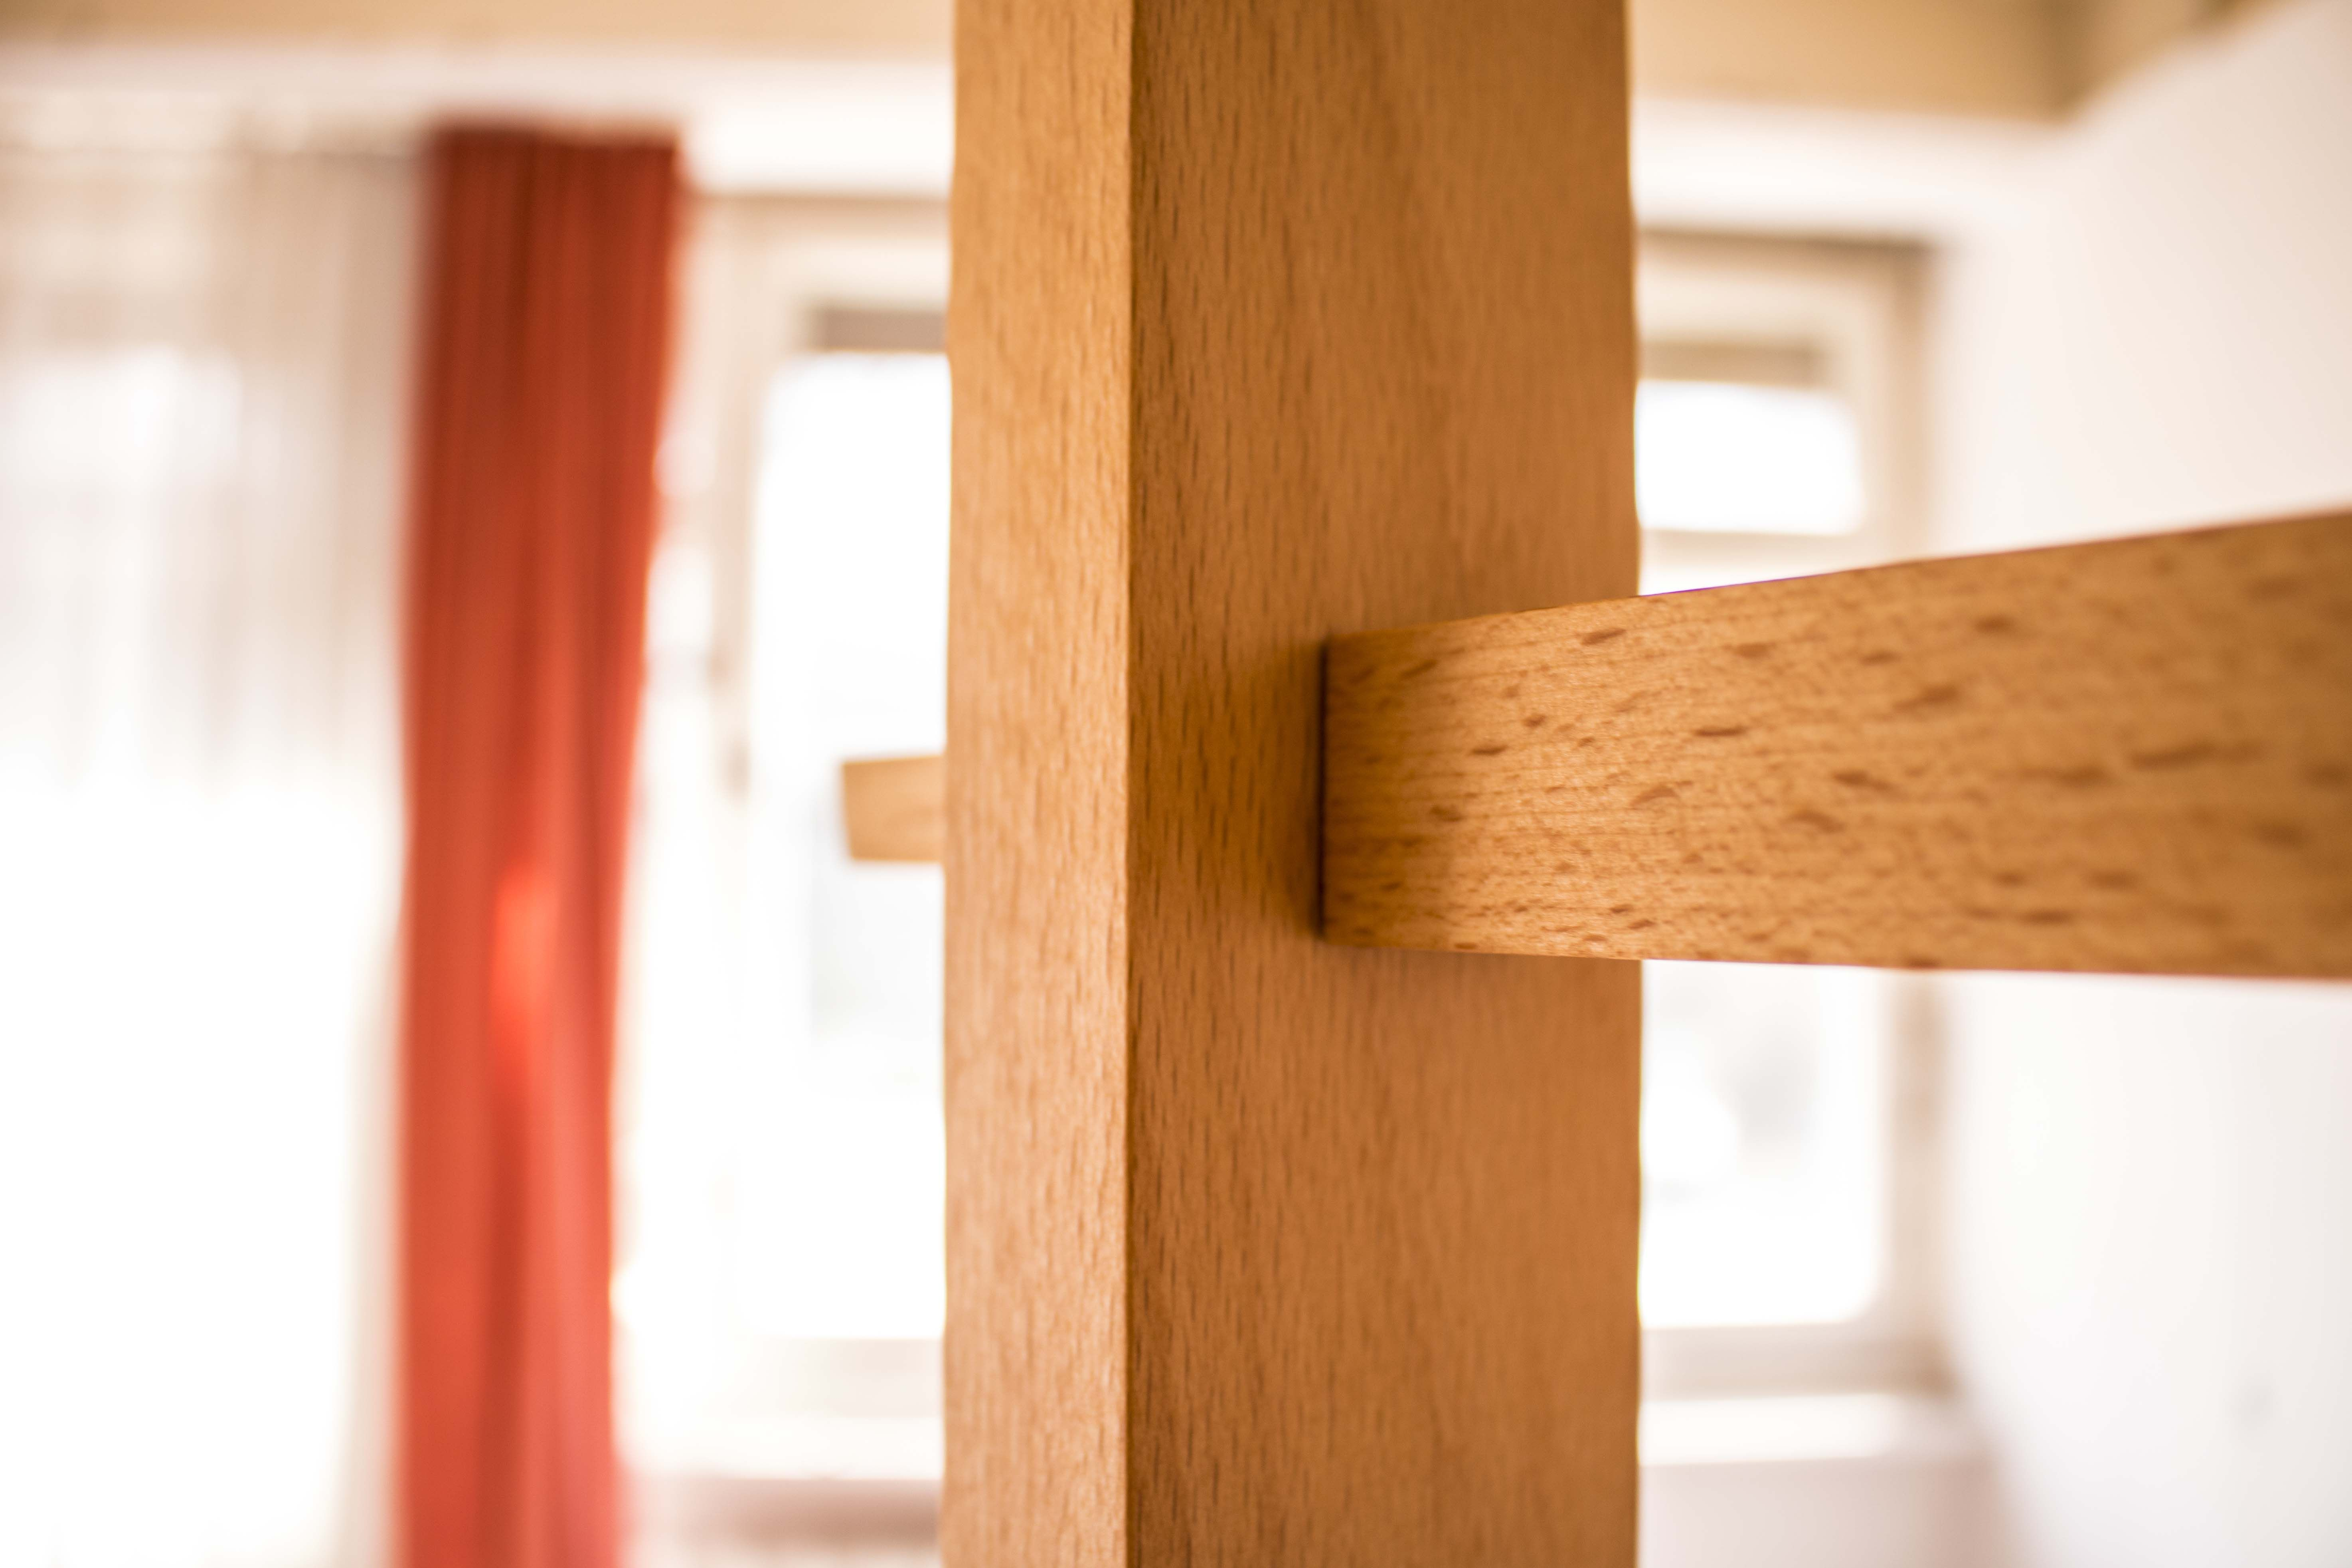 Japanese joints. Woodworking without glue and screws ...